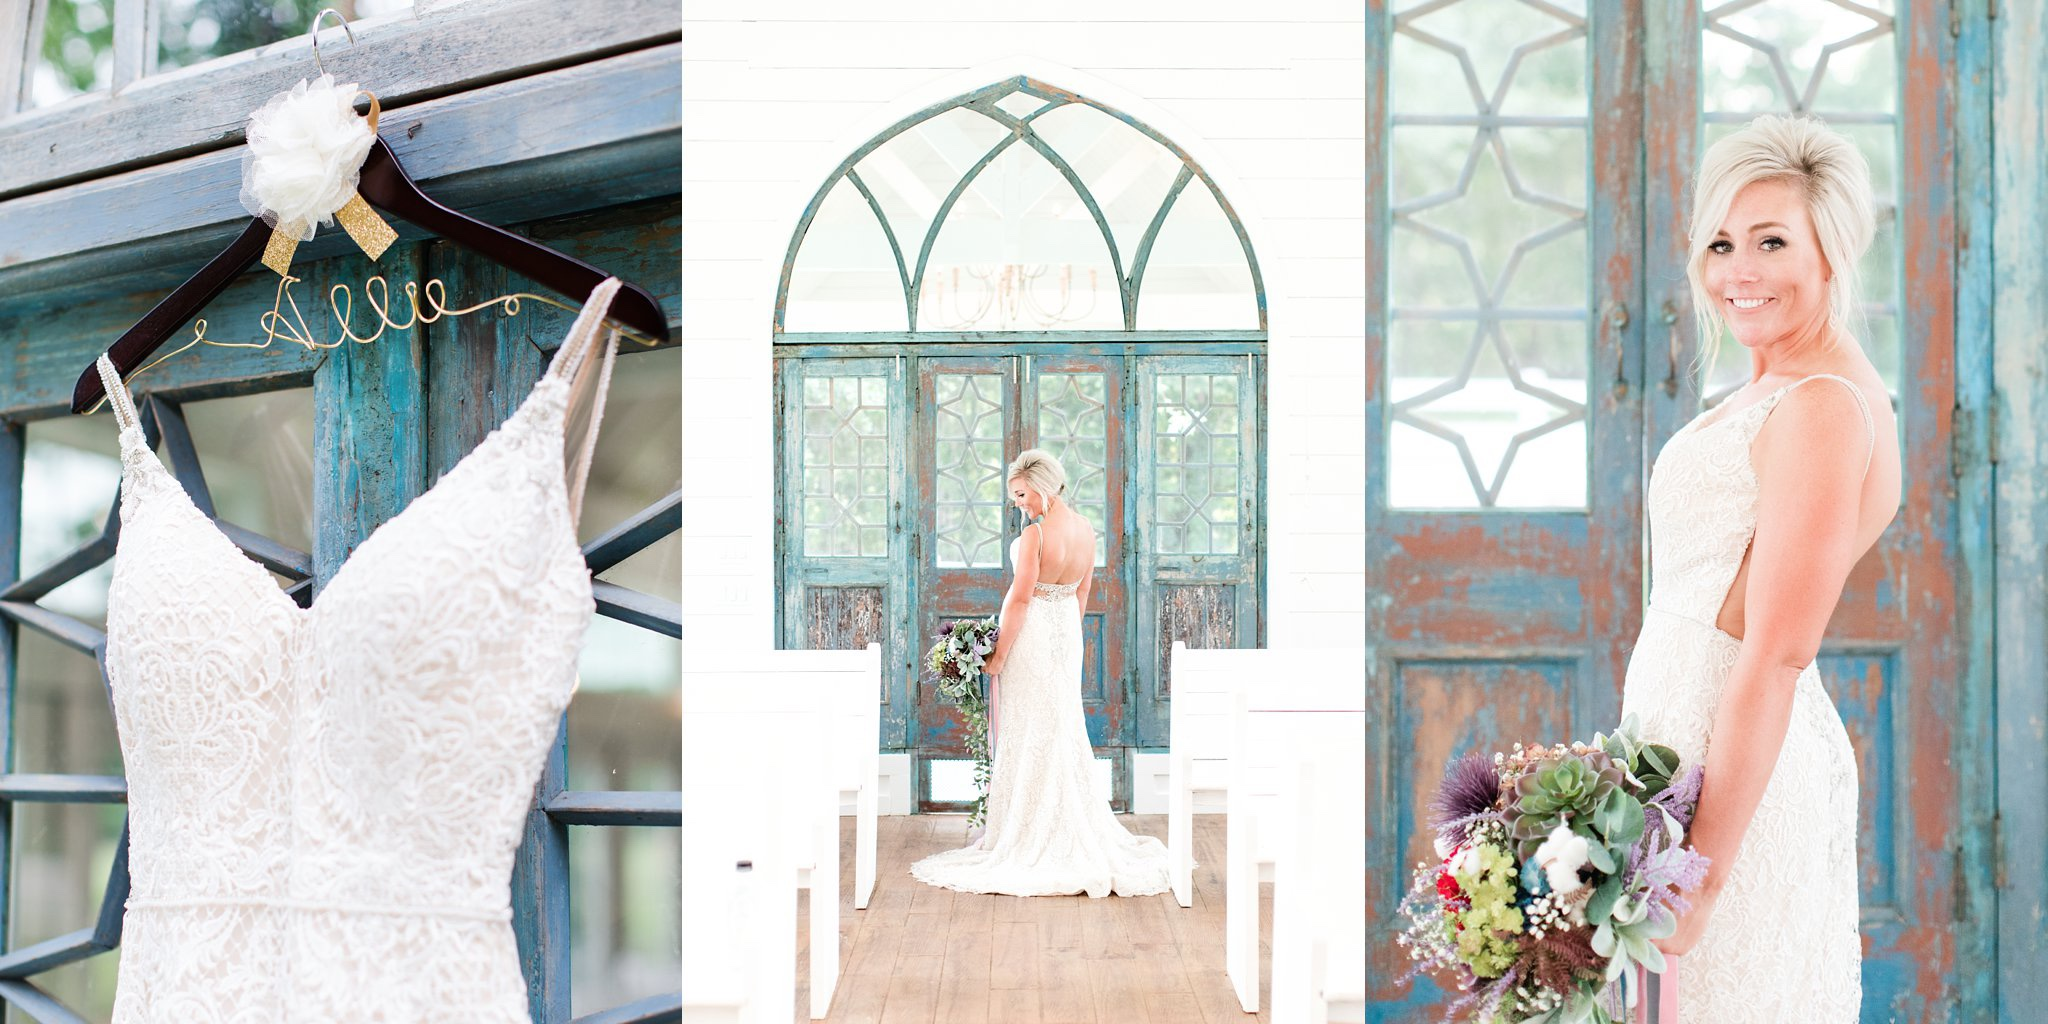 Stephen And Allieu0027s Wedding At Folmar, Tyler TX Was A Beautiful, Intimate  Ceremony With Their Families And Close Fiends! The White Chapel With The  Stunning ...